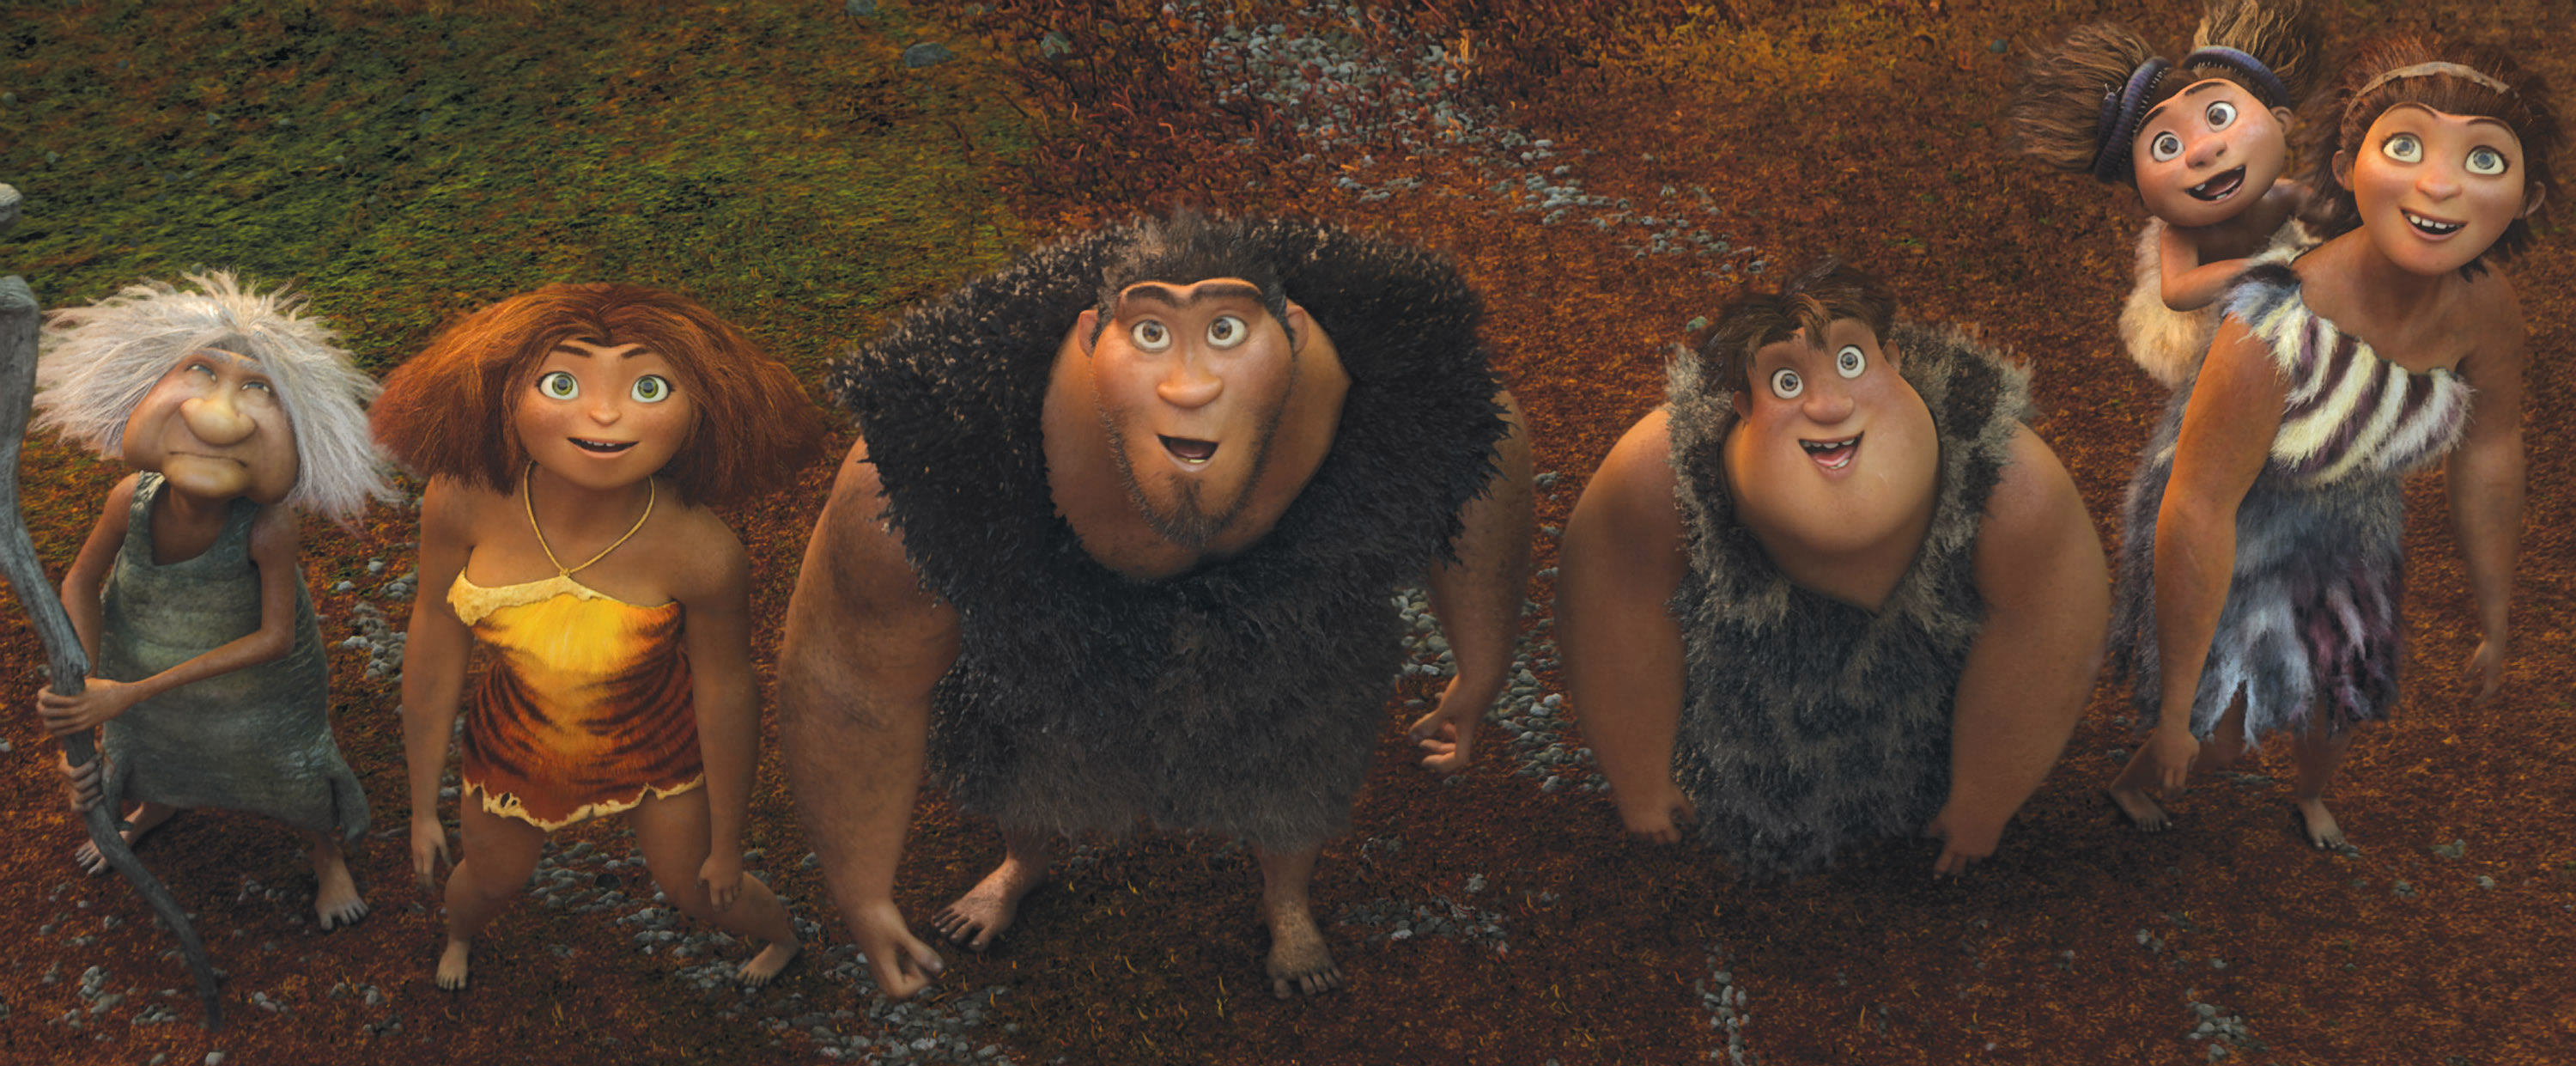 67bd65bd52d9 The Croods - Analysis - Narrative First